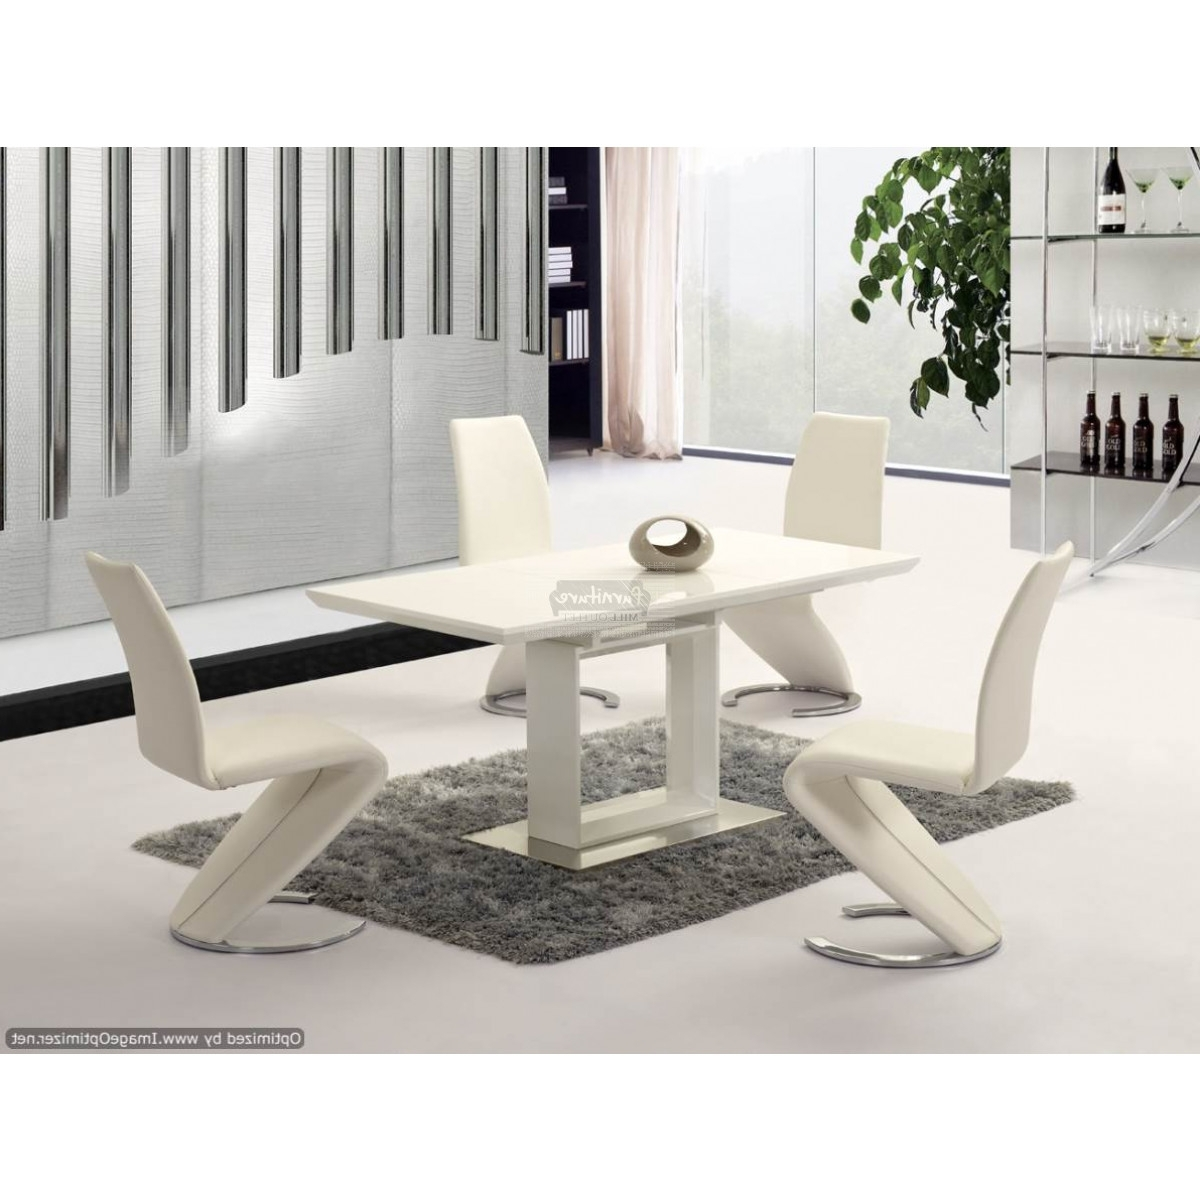 Space White High Gloss Extending Dining Table – 120Cm To 160Cm Inside Popular High Gloss Extendable Dining Tables (View 9 of 25)